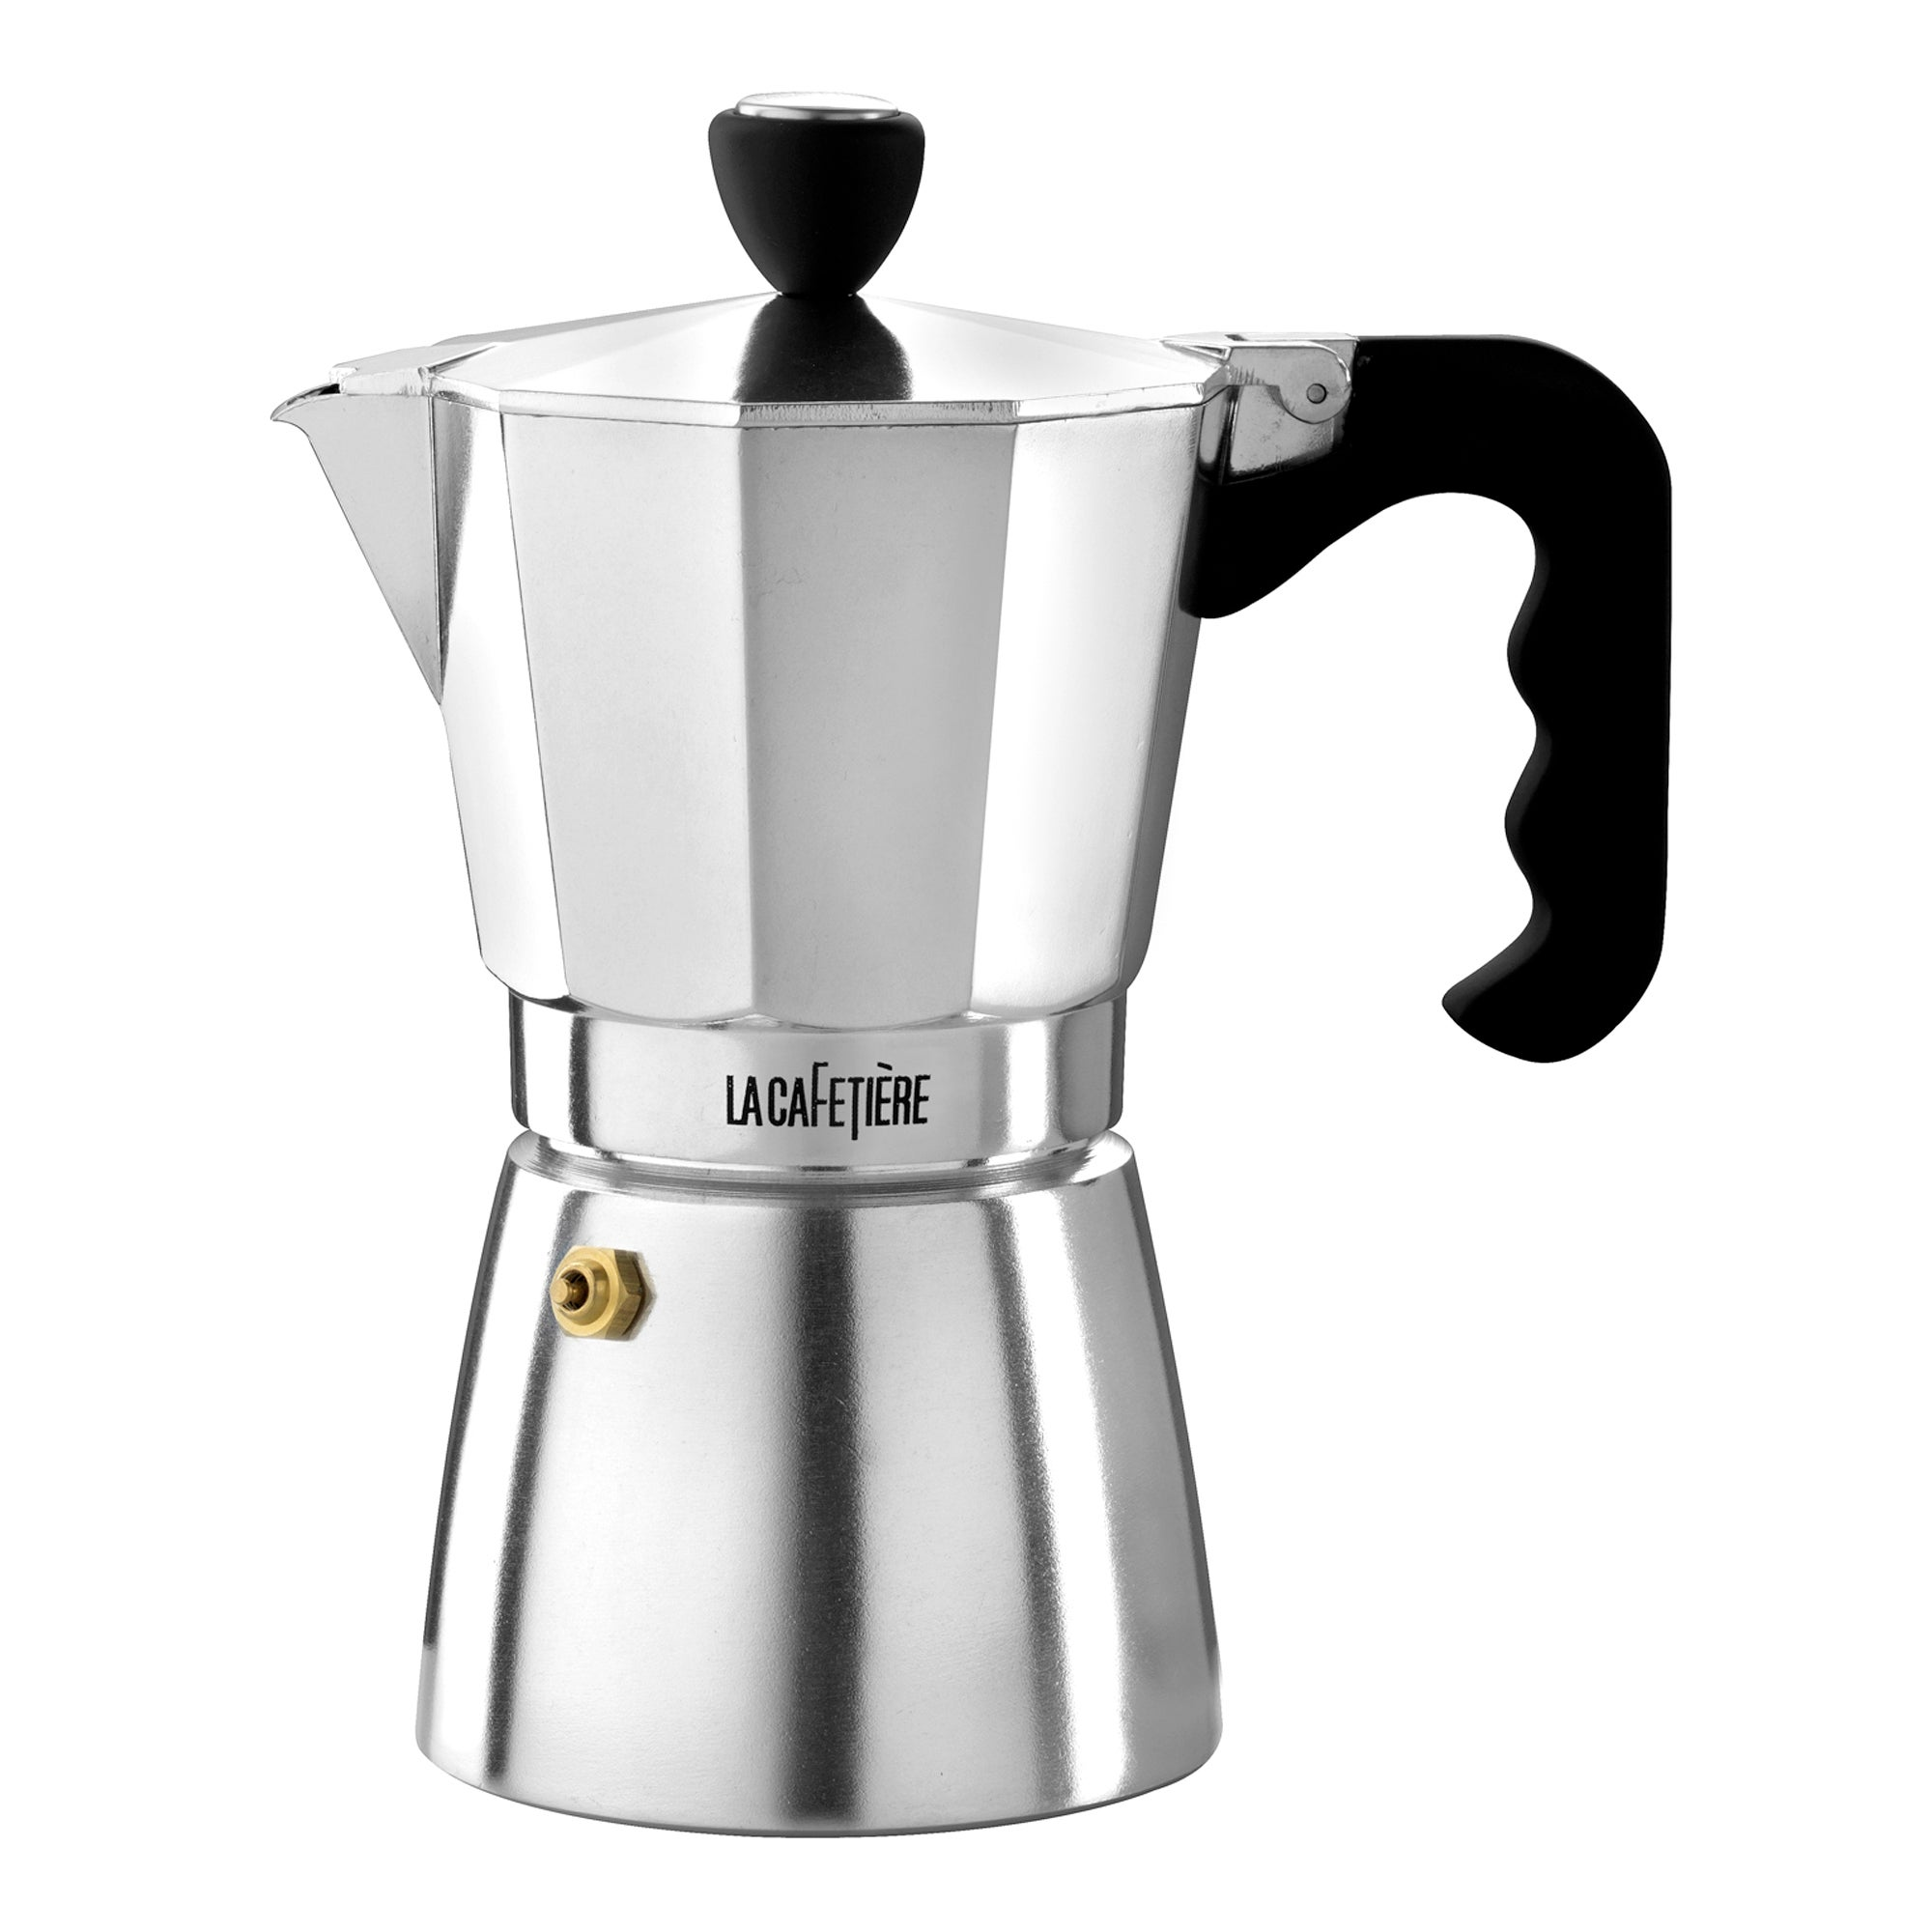 Melitta Coffee Maker Stove Top : Silver cup Shop for cheap Musical Instruments and Save online